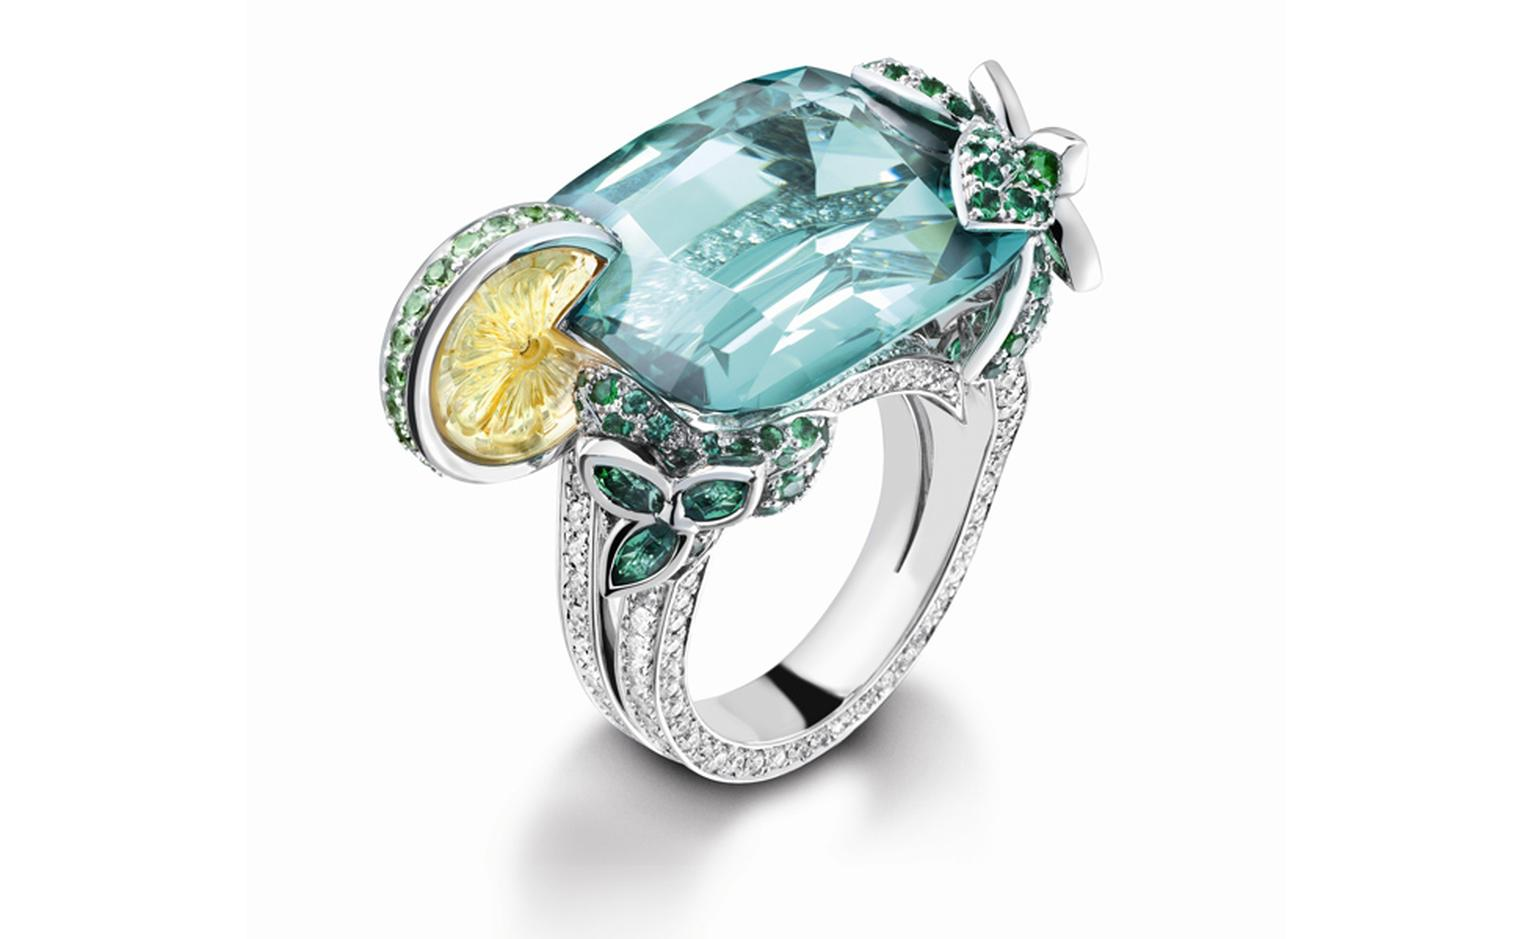 PIAGET, Limelight Cocktail inspiration, Mojito ring in white gold with diamonds and green tourmaline, citrine, tsavorites and emeralds. POA